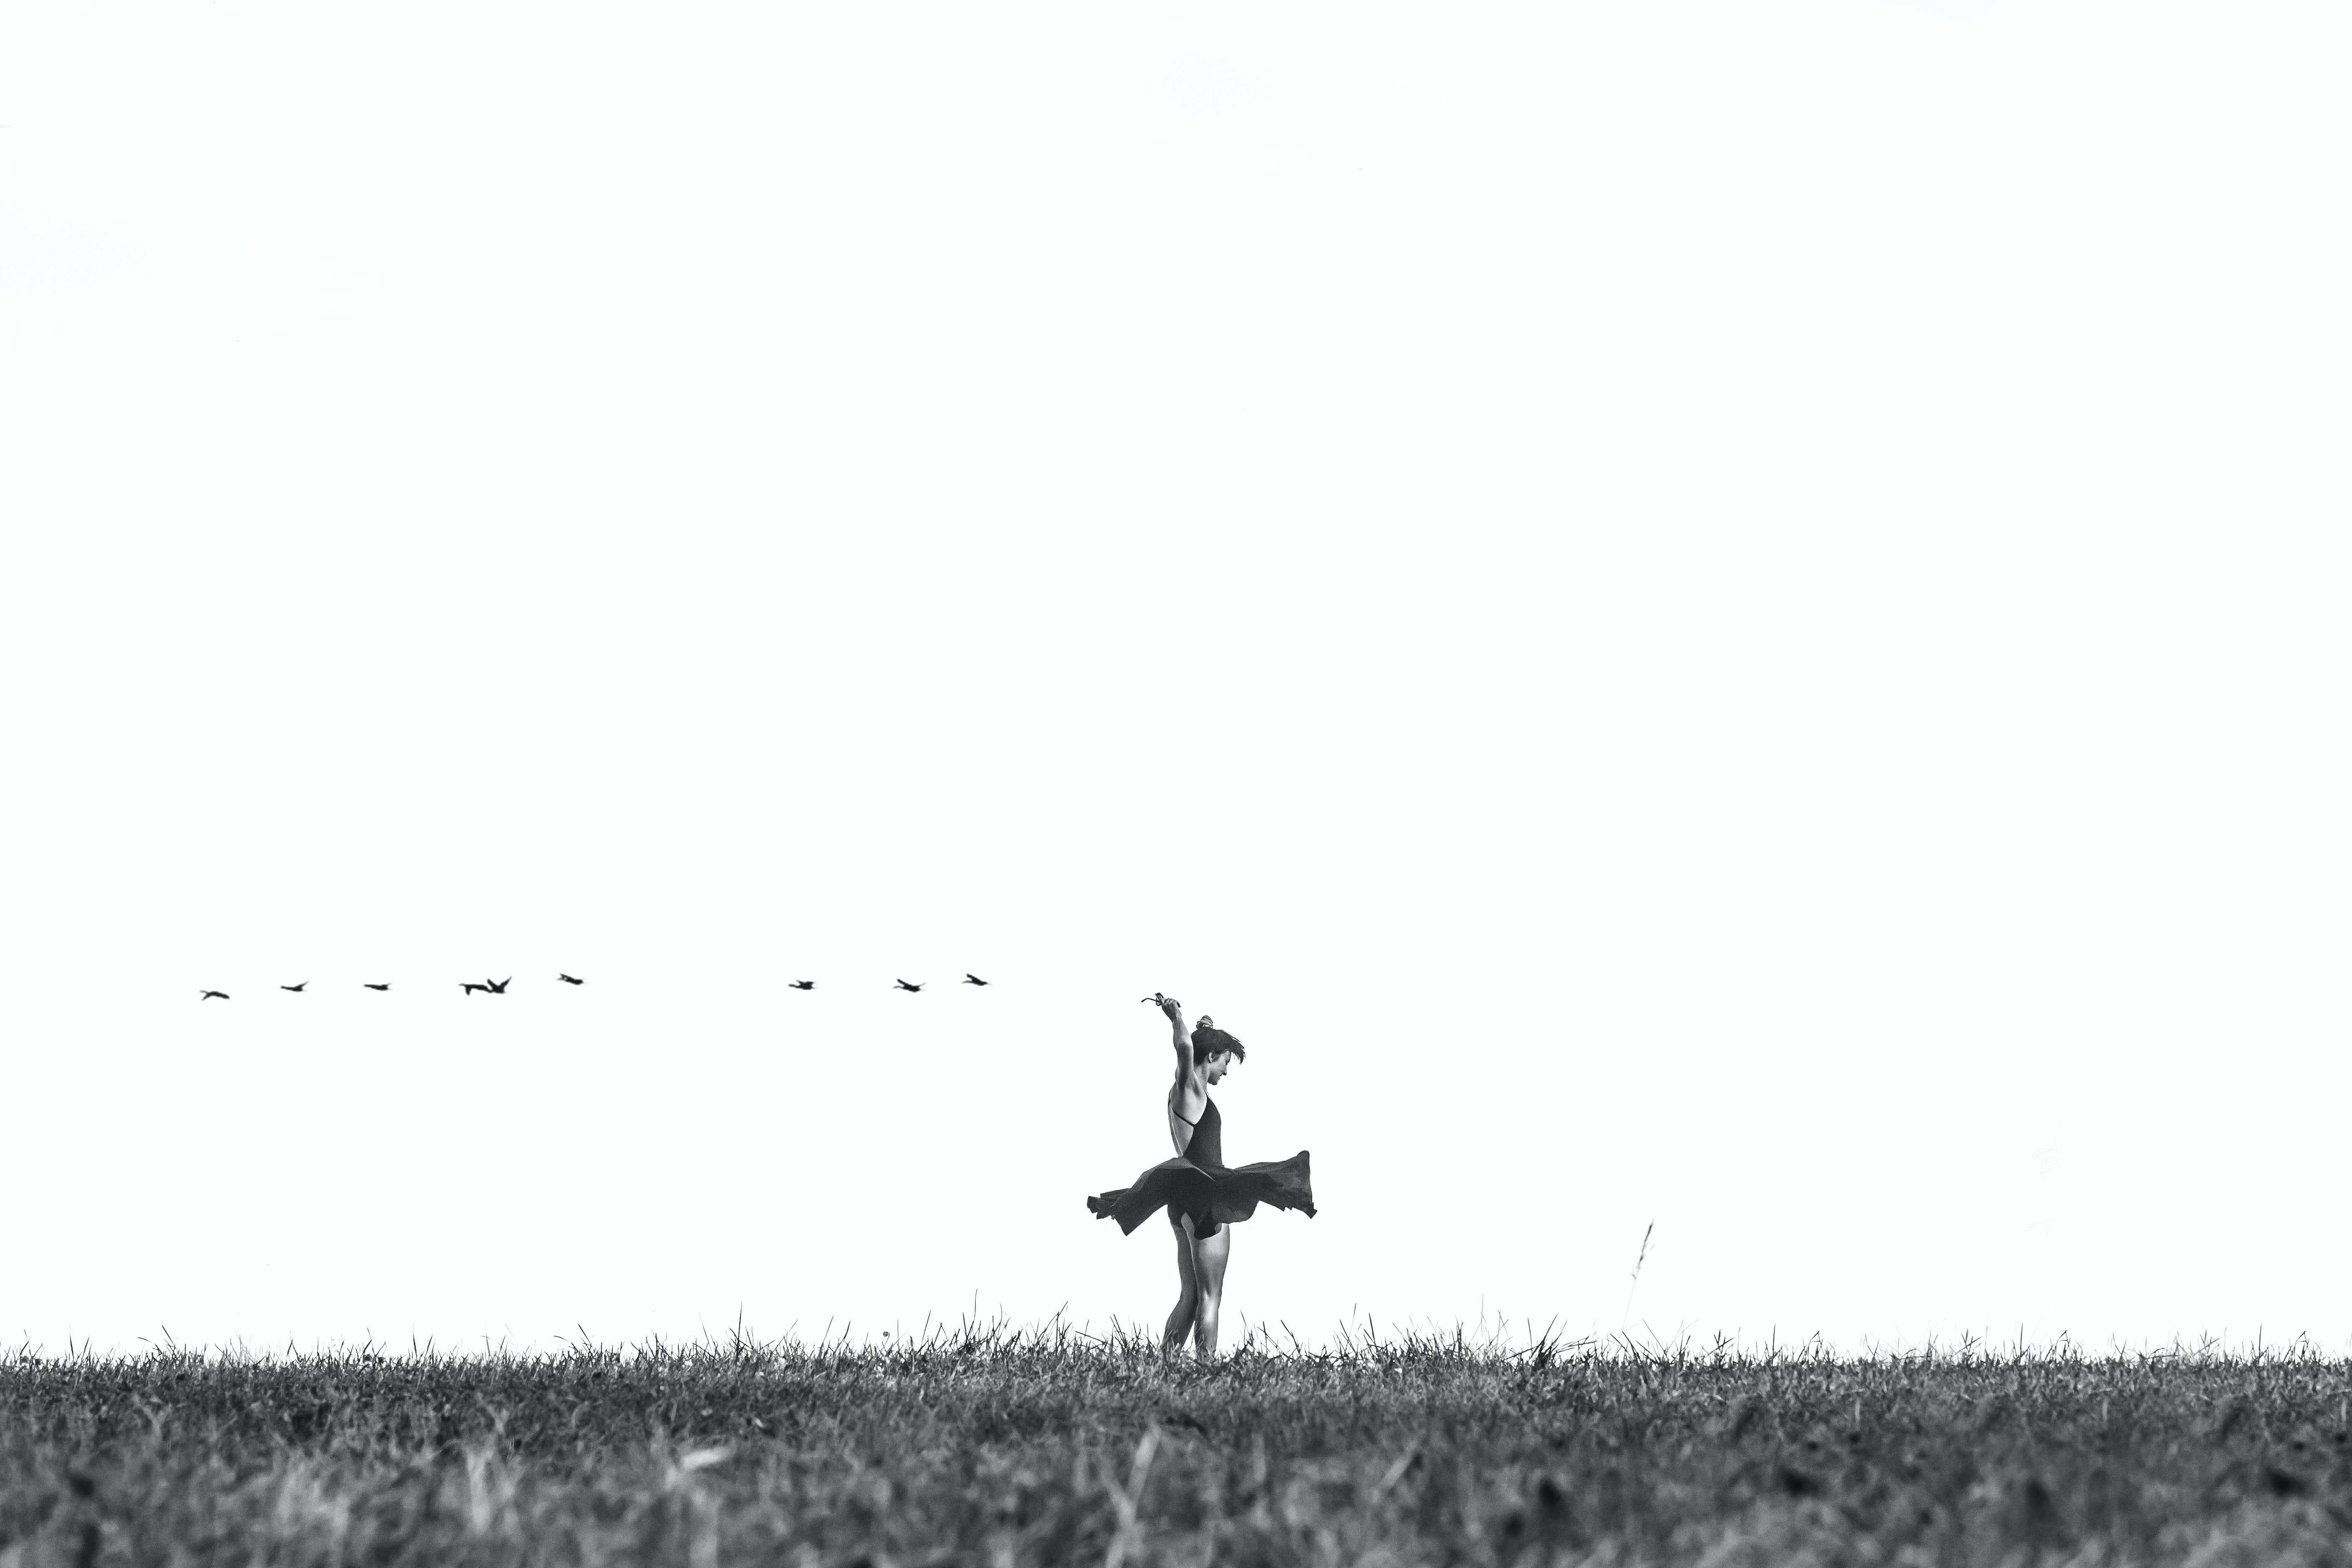 greyscale photo of woman standing on grass field